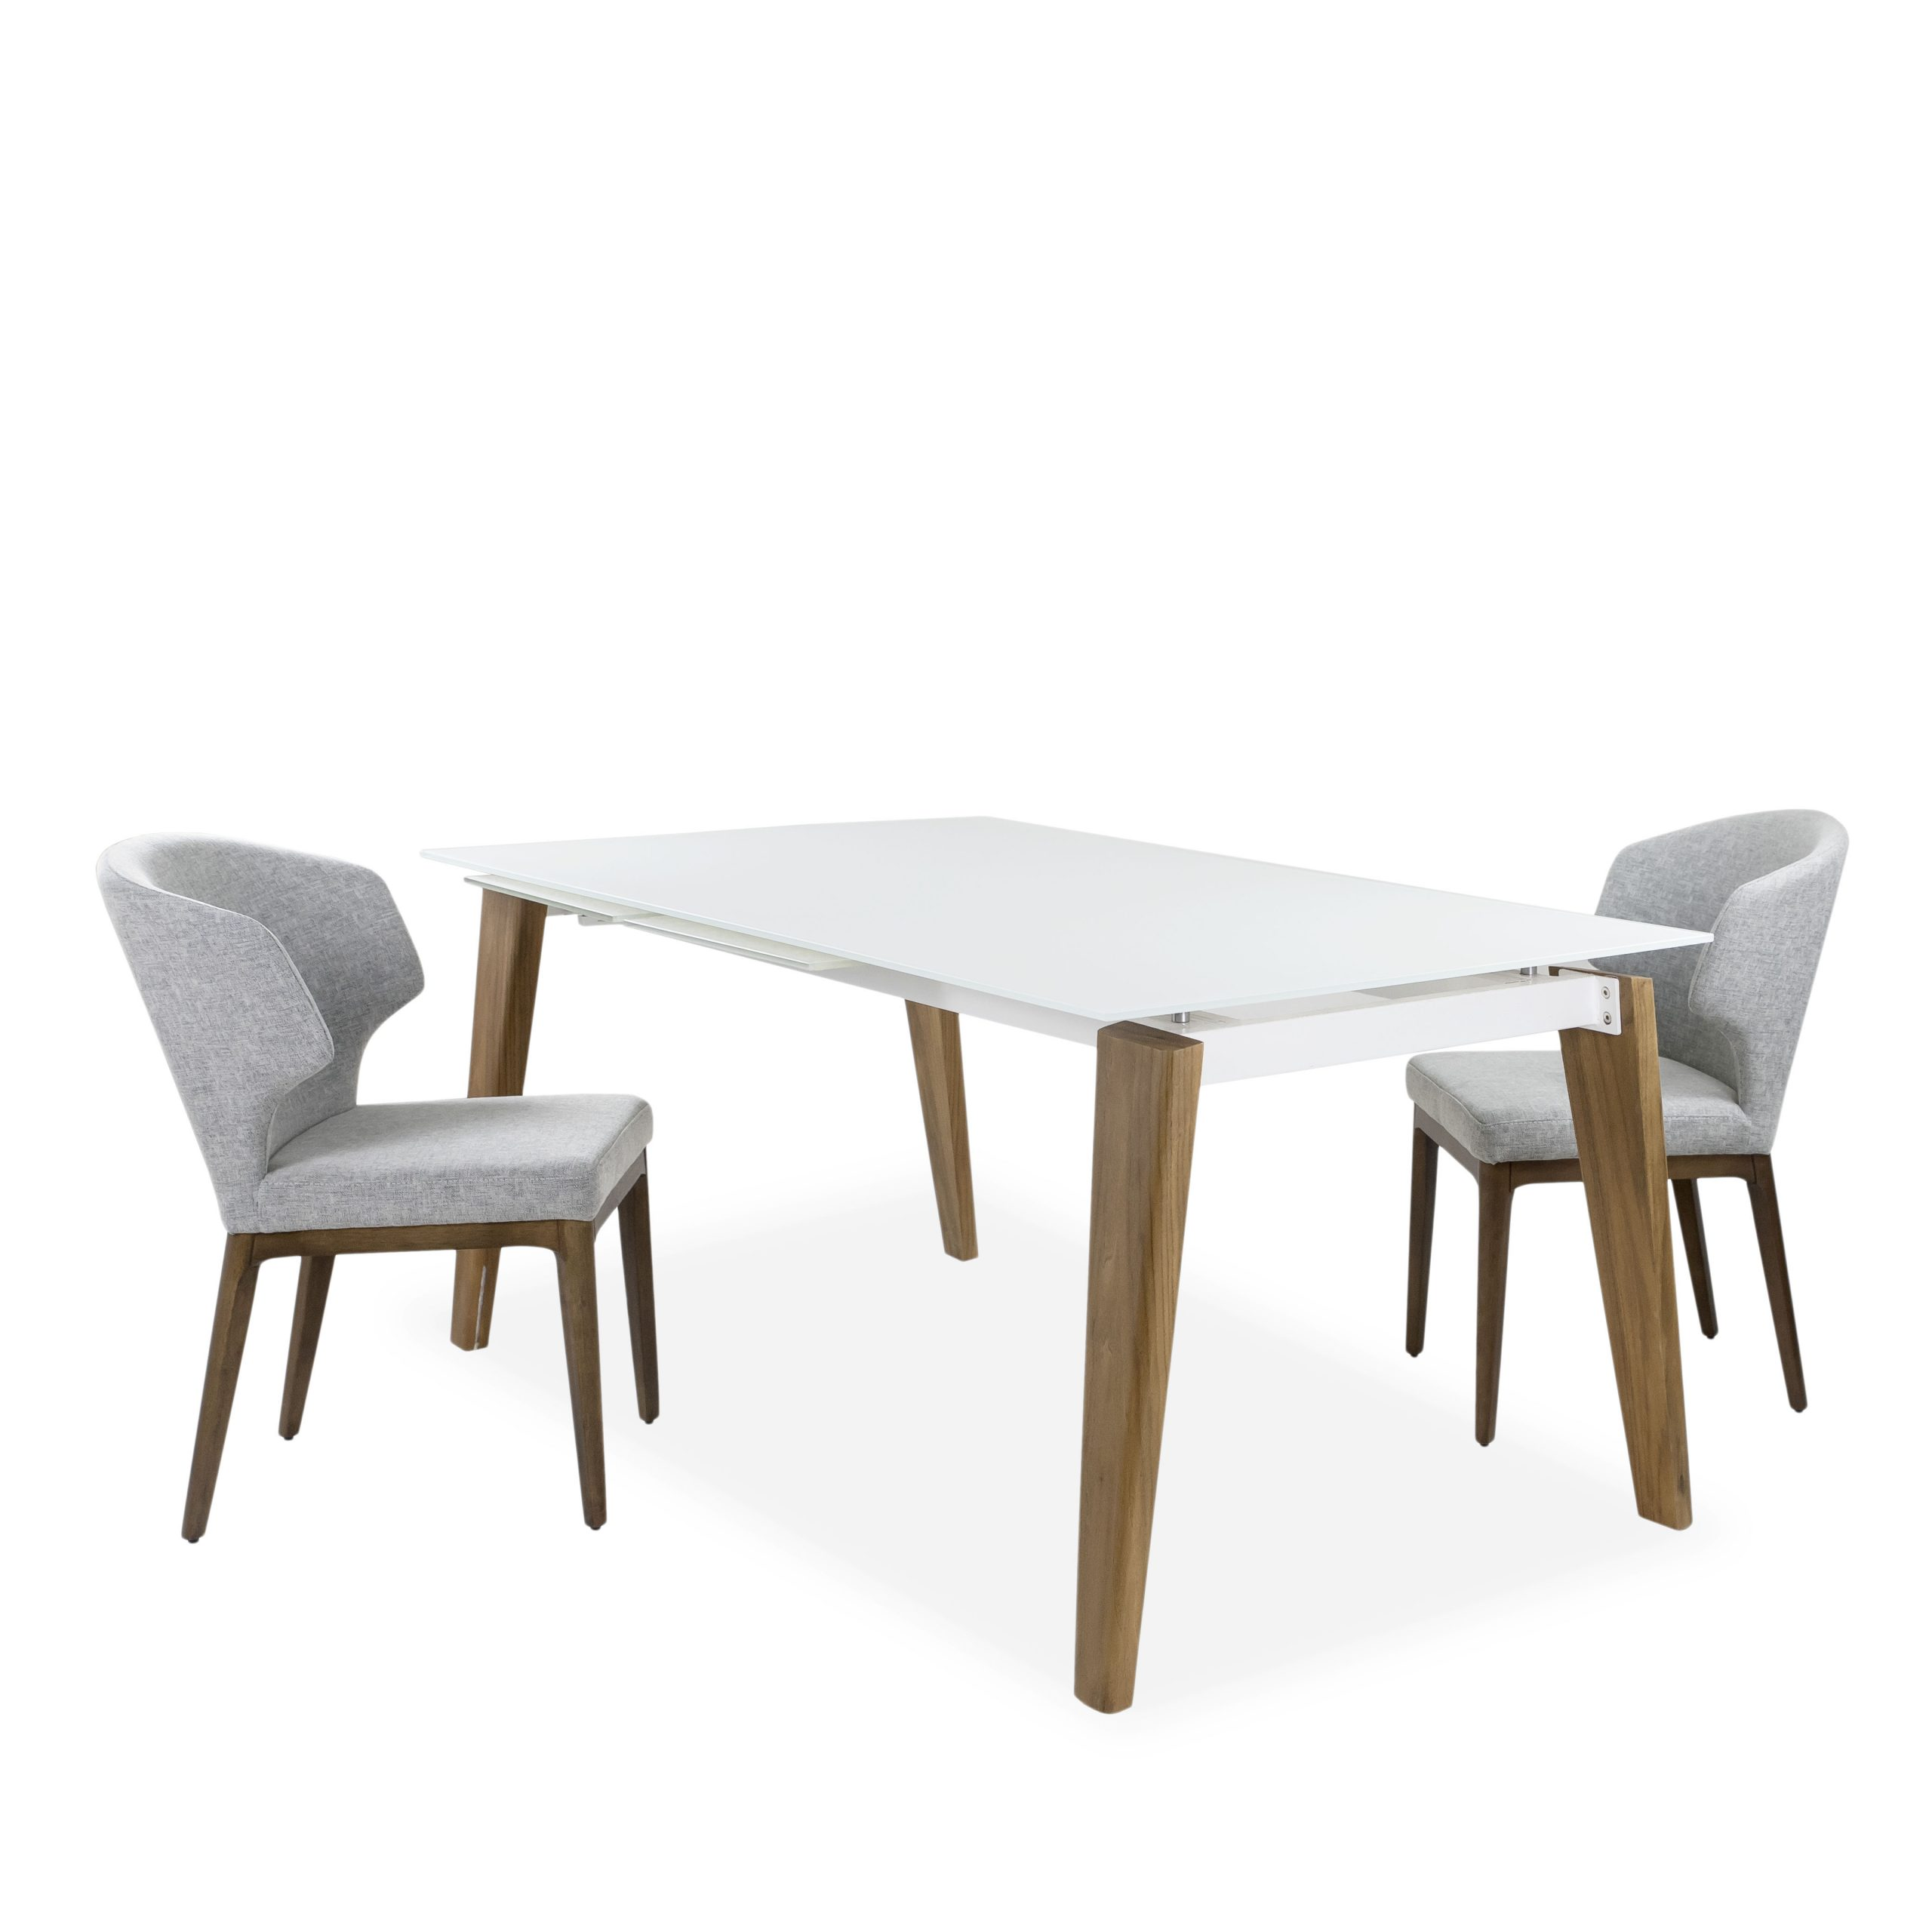 Dover Dining Table in Walnut with Shale Grey Blake Dining Chair